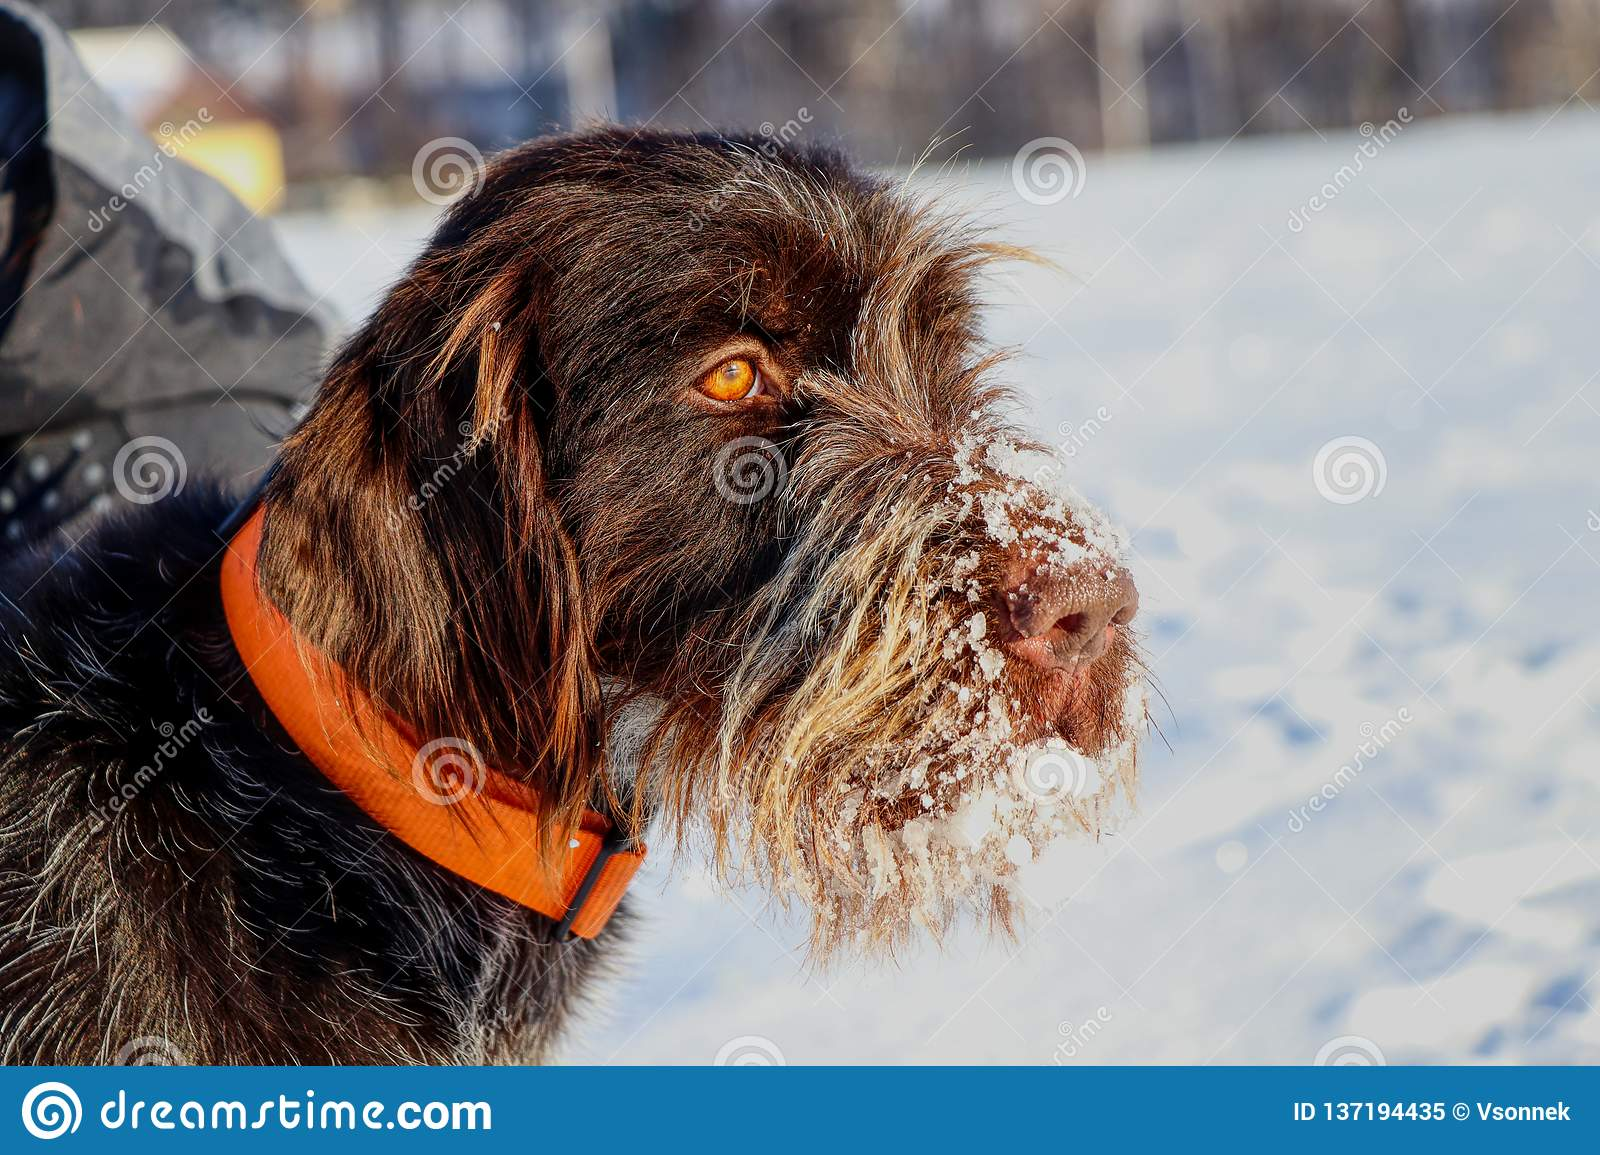 A beautiful dog face full of snow watching deers in nature. Brown female dog of Bohemian Wire-haired Pointing Griffon or korthals